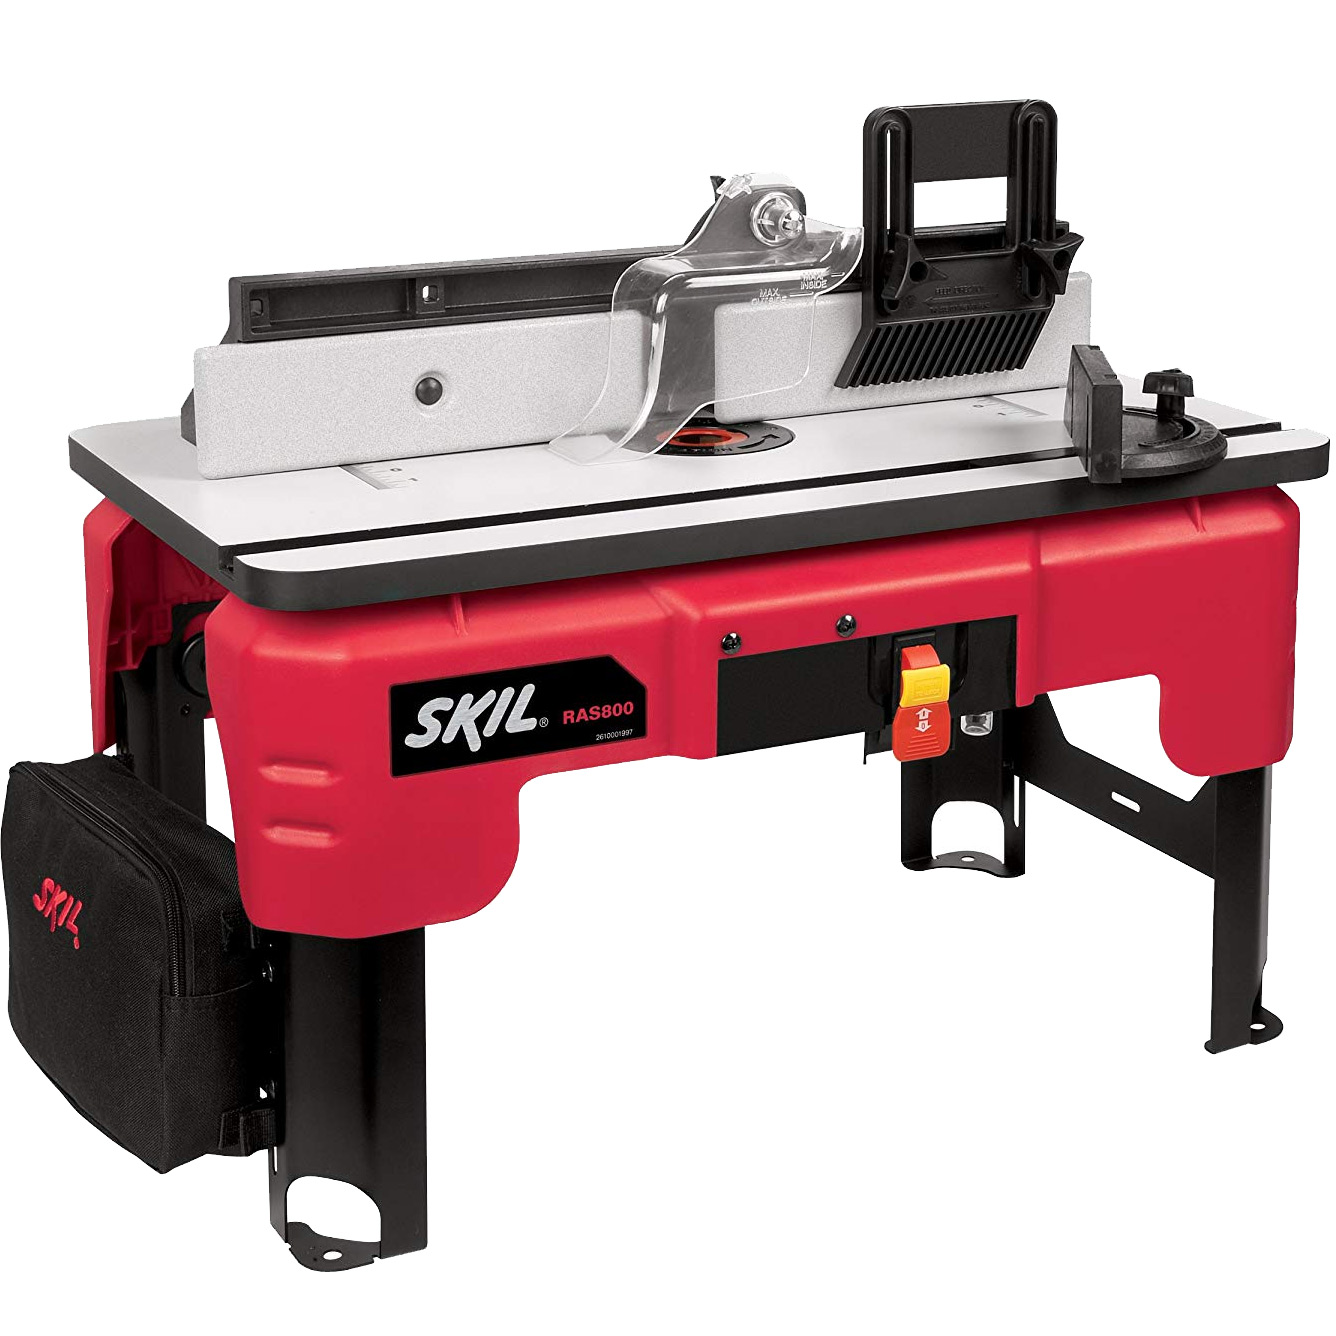 skil ras800 24-in x 14-in router shaper table